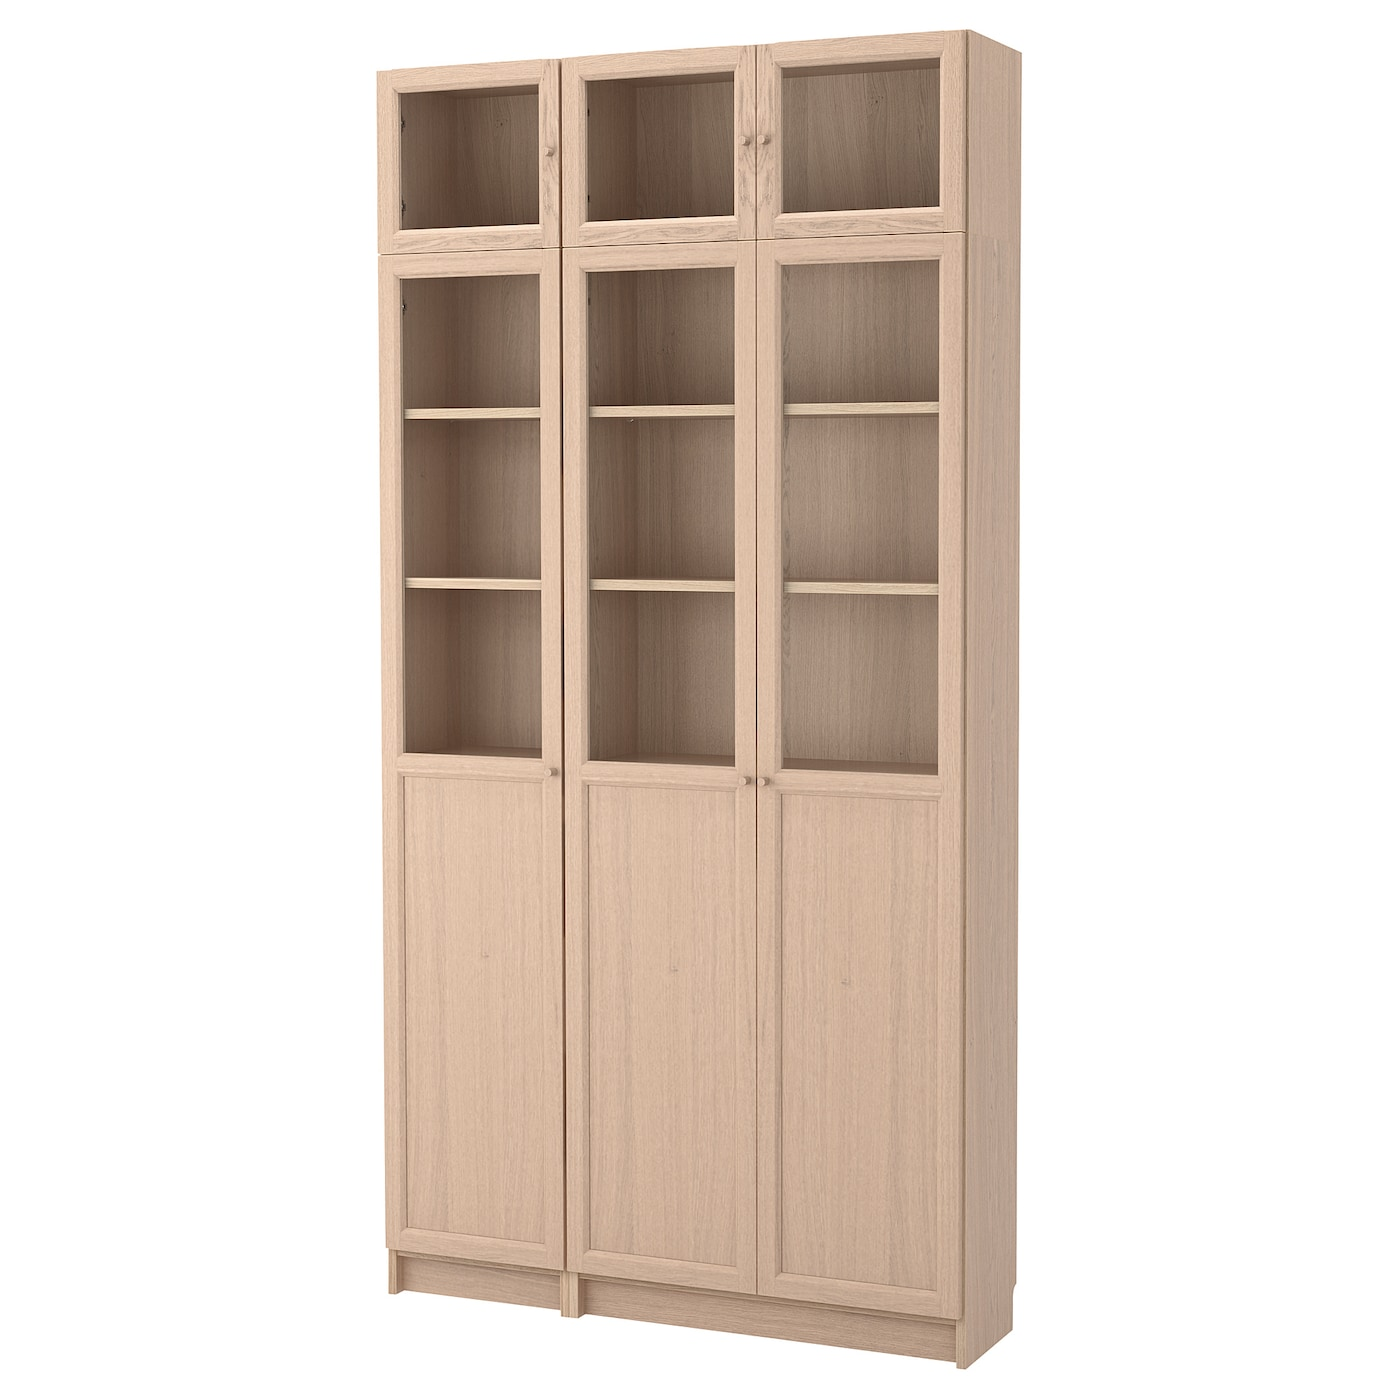 Ikea Billy Oxberg Bookcase Combination Gl Doors Surface Made From Natural Wood Veneer